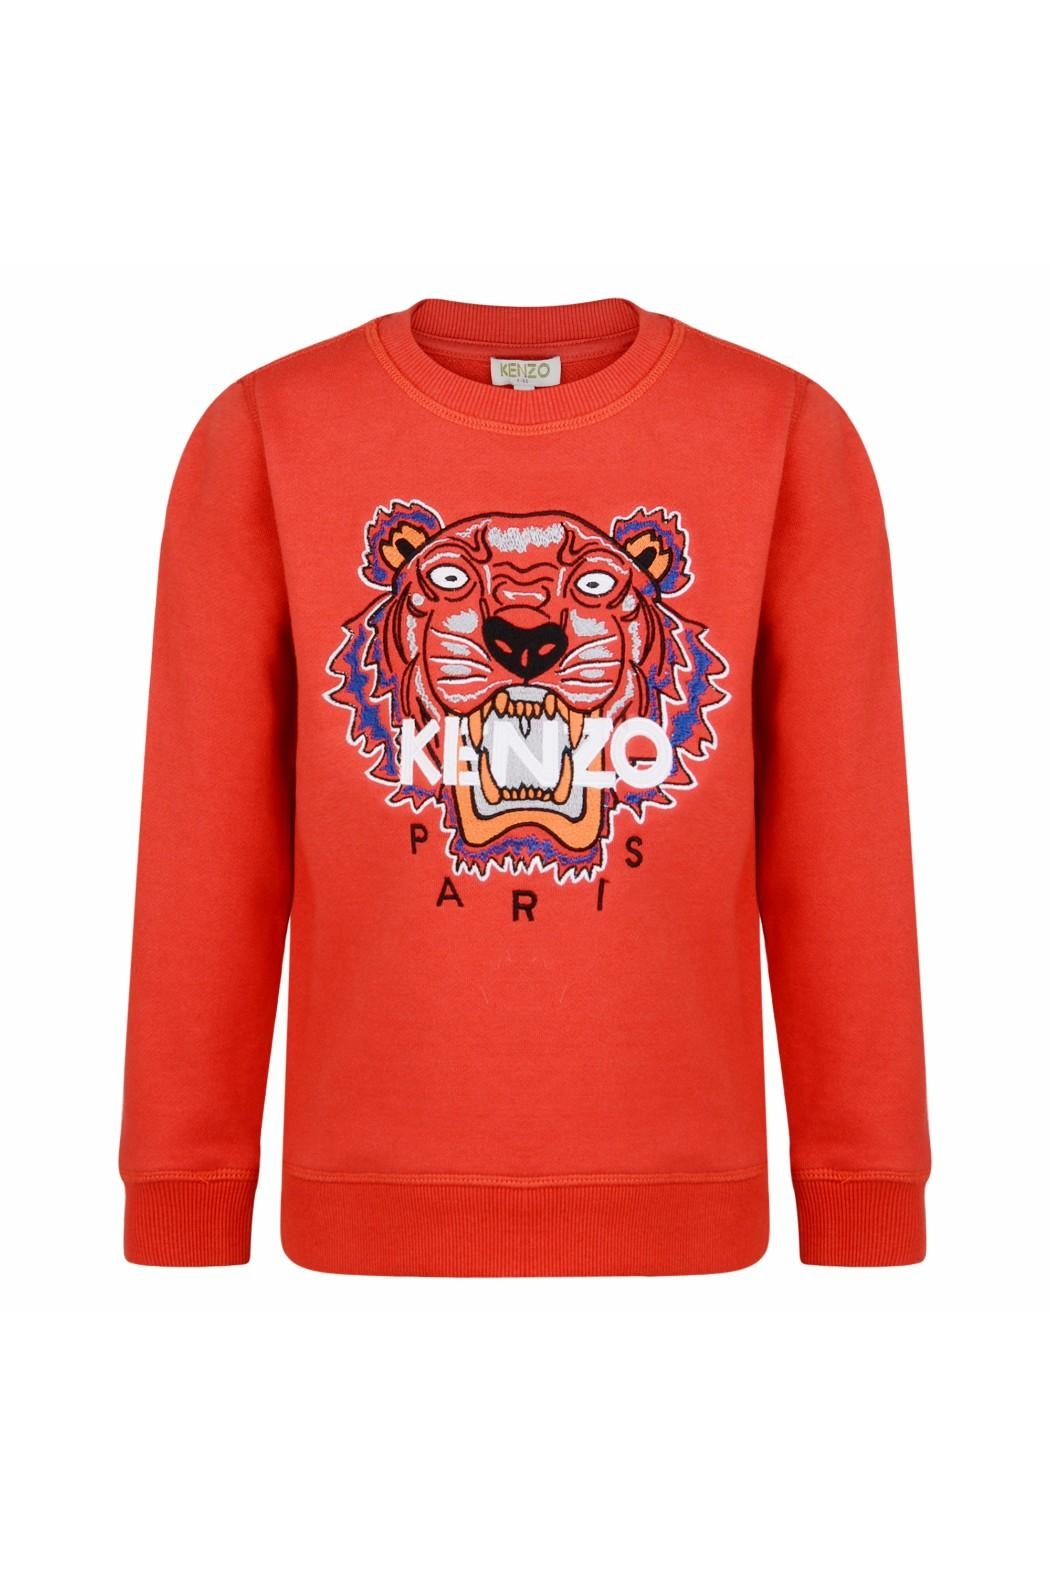 7186390dc kenzo tiger shirt kids red sale > OFF60% Discounts